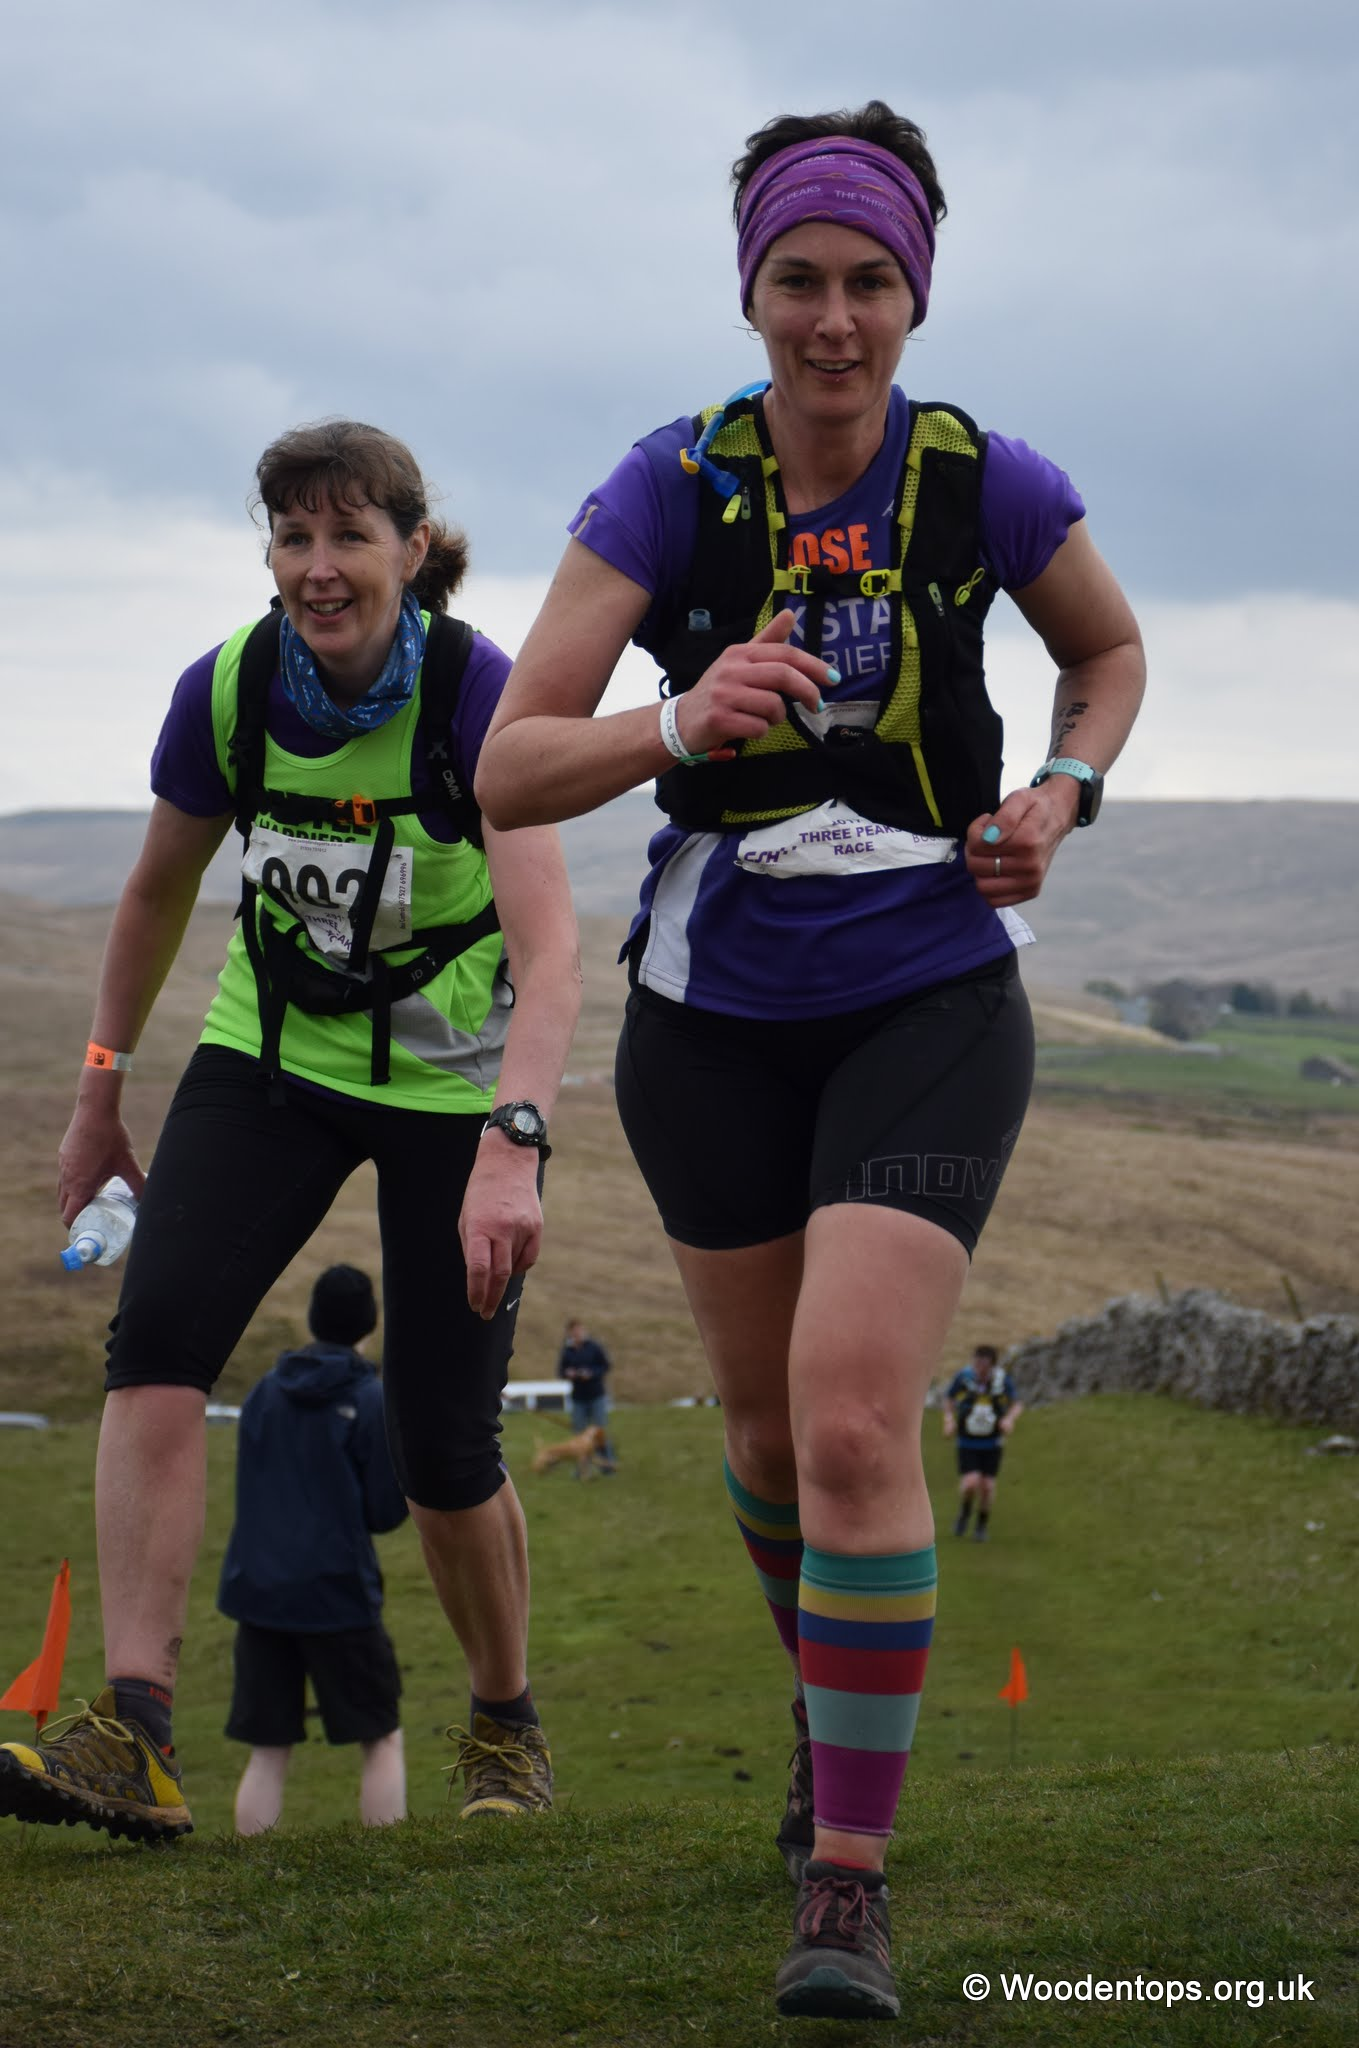 The 63rd Three Peaks race